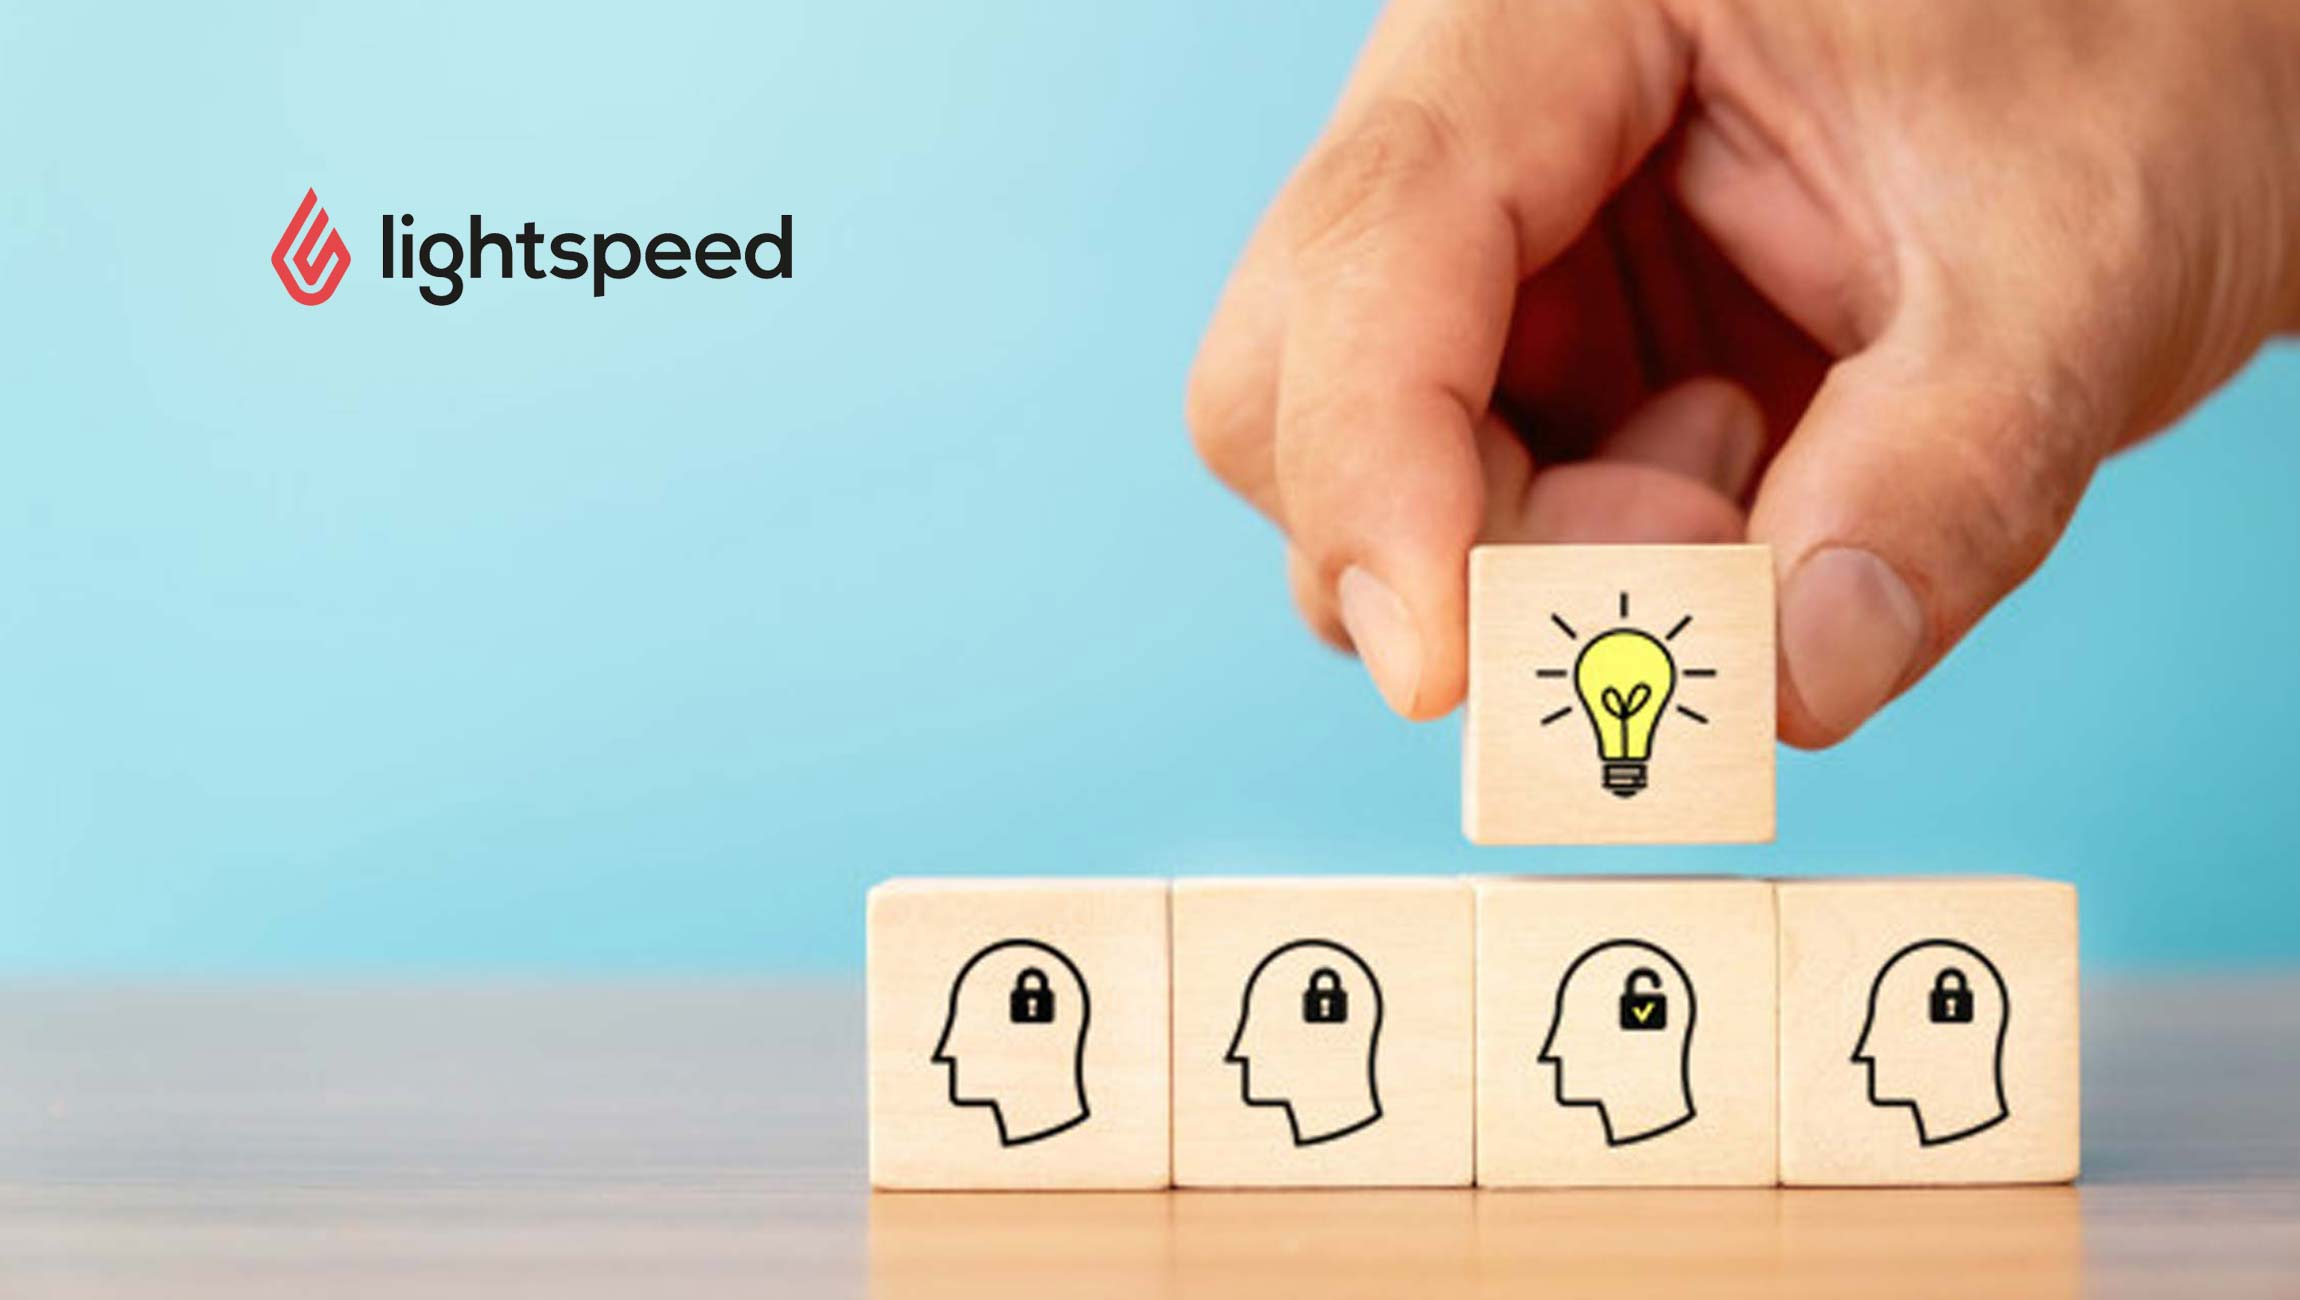 Lightspeed Announces Acquisition of Upserve 6